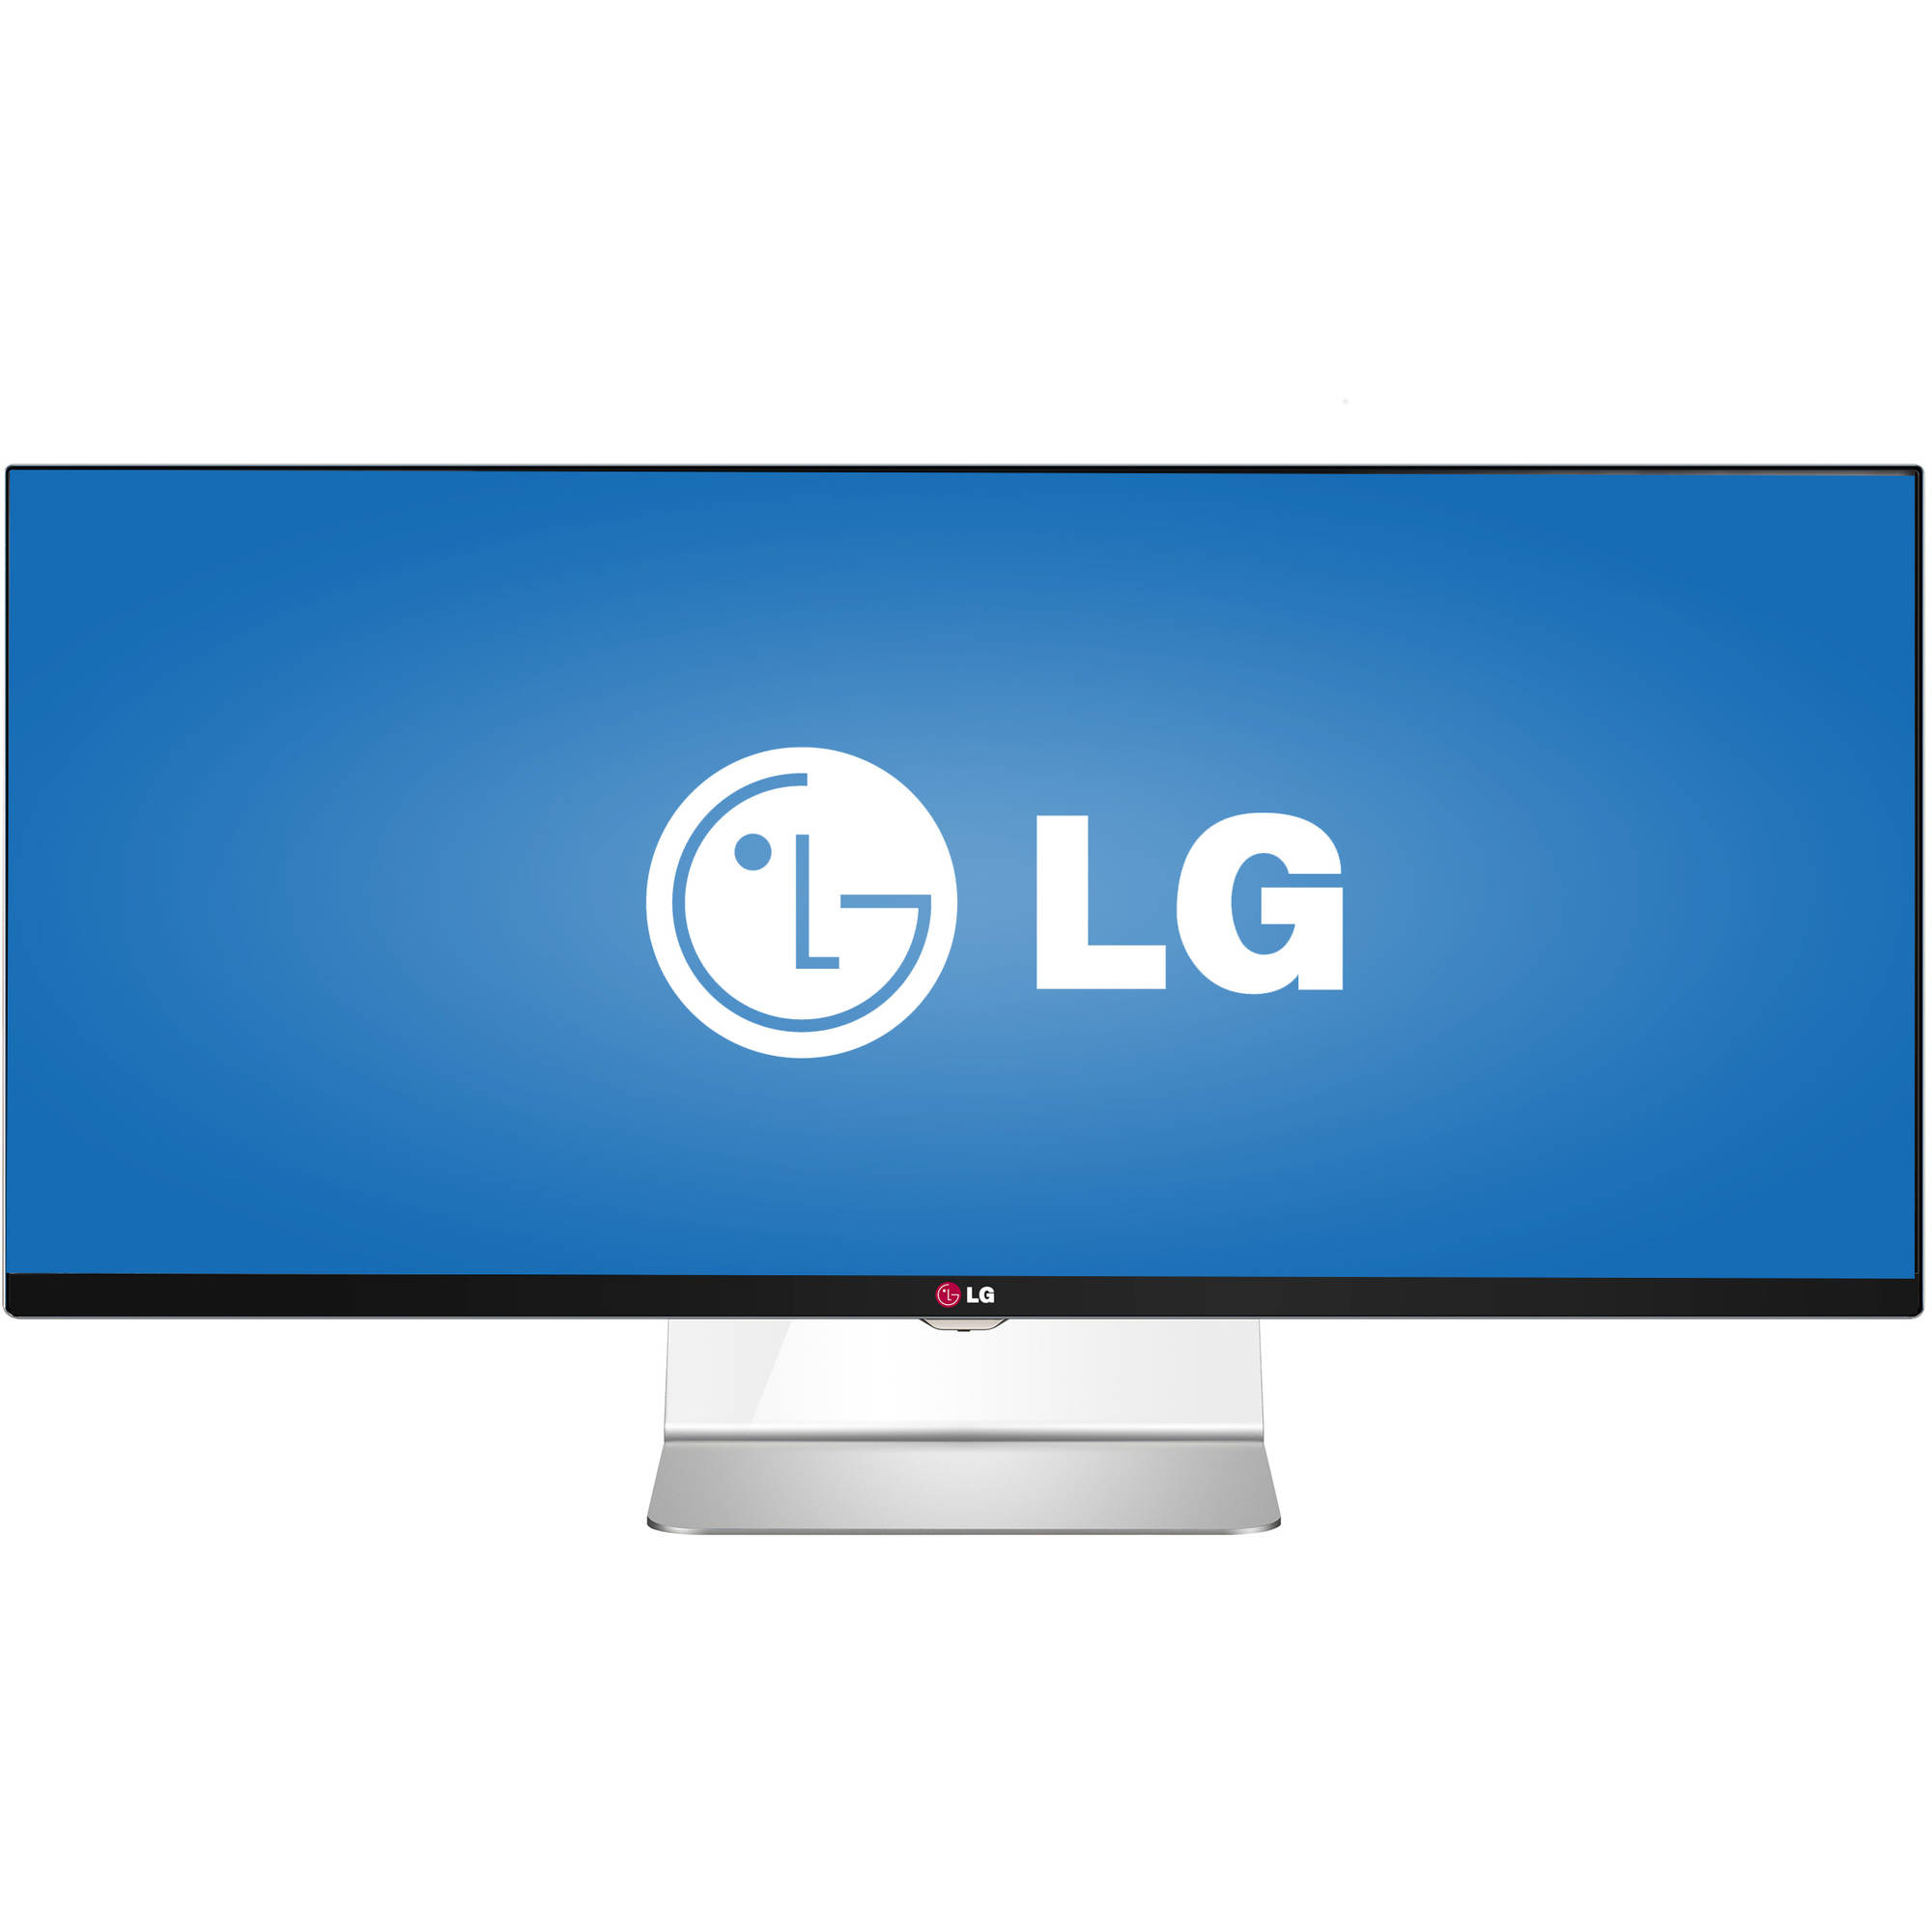 LG 5 1 Channel 500W Smart 3D Blu-ray Home Theater System (BH5140S)